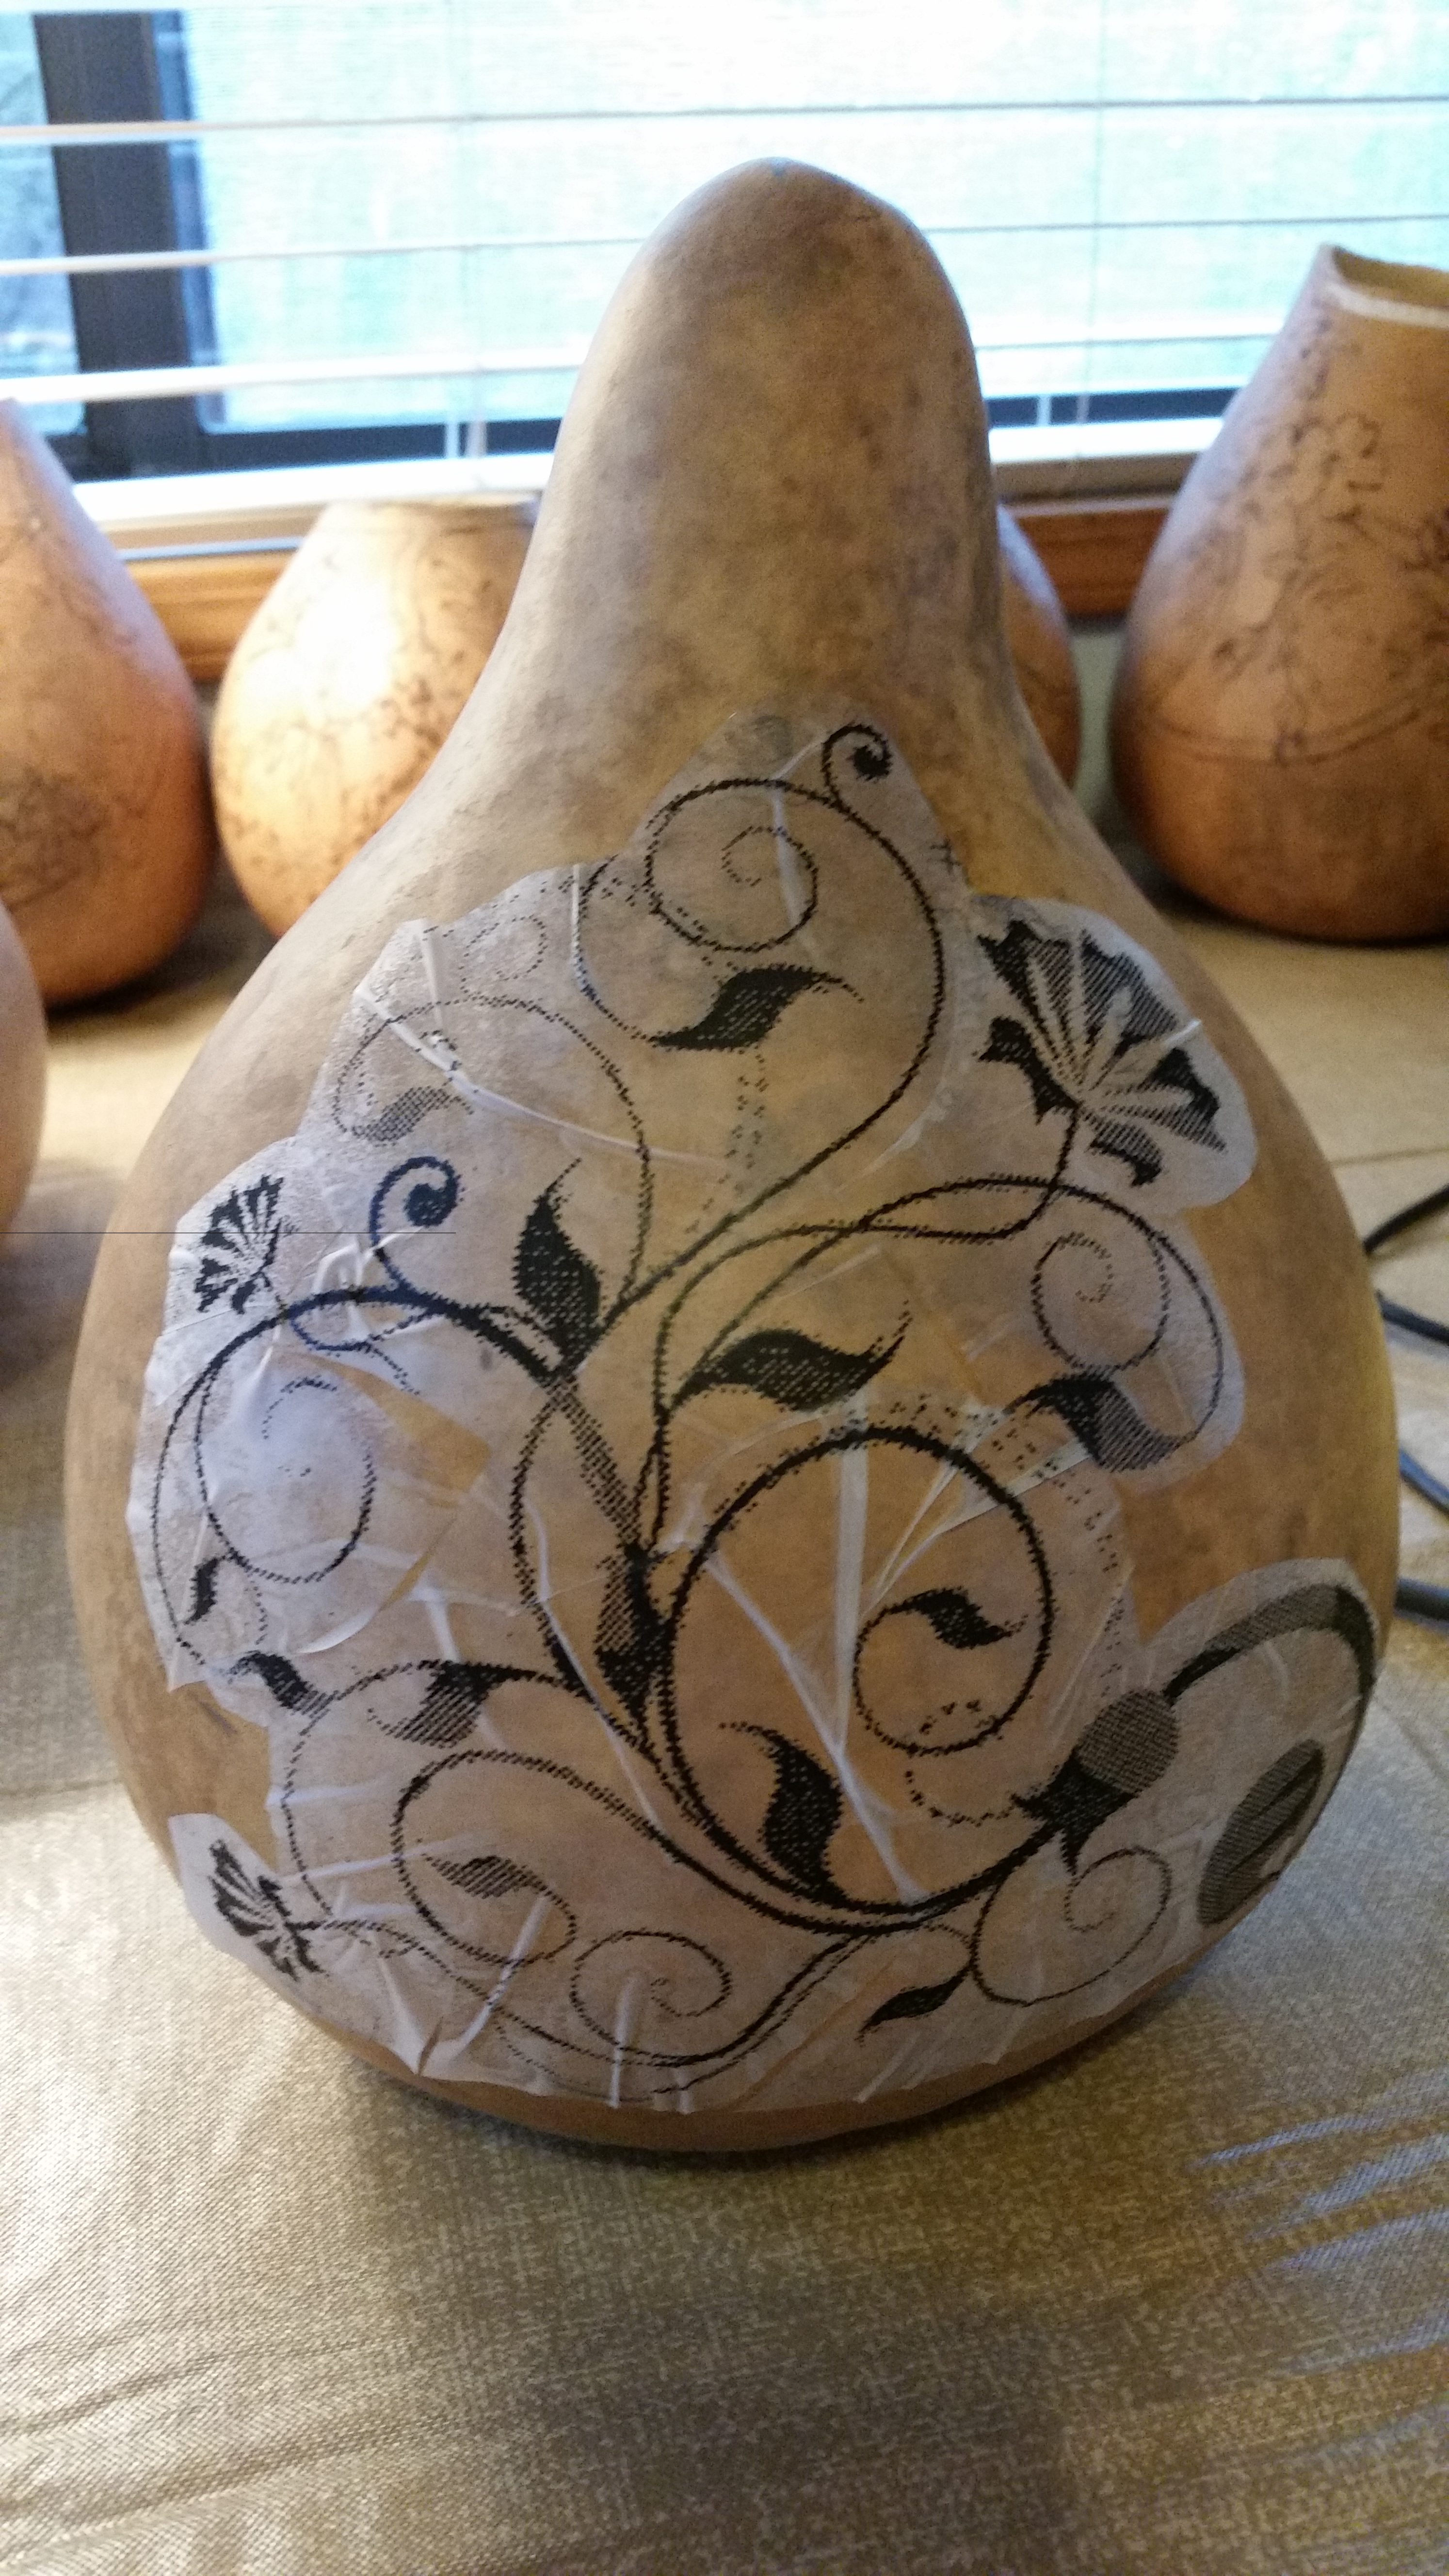 How to Transfer Design onto Gourd (#2 in series)